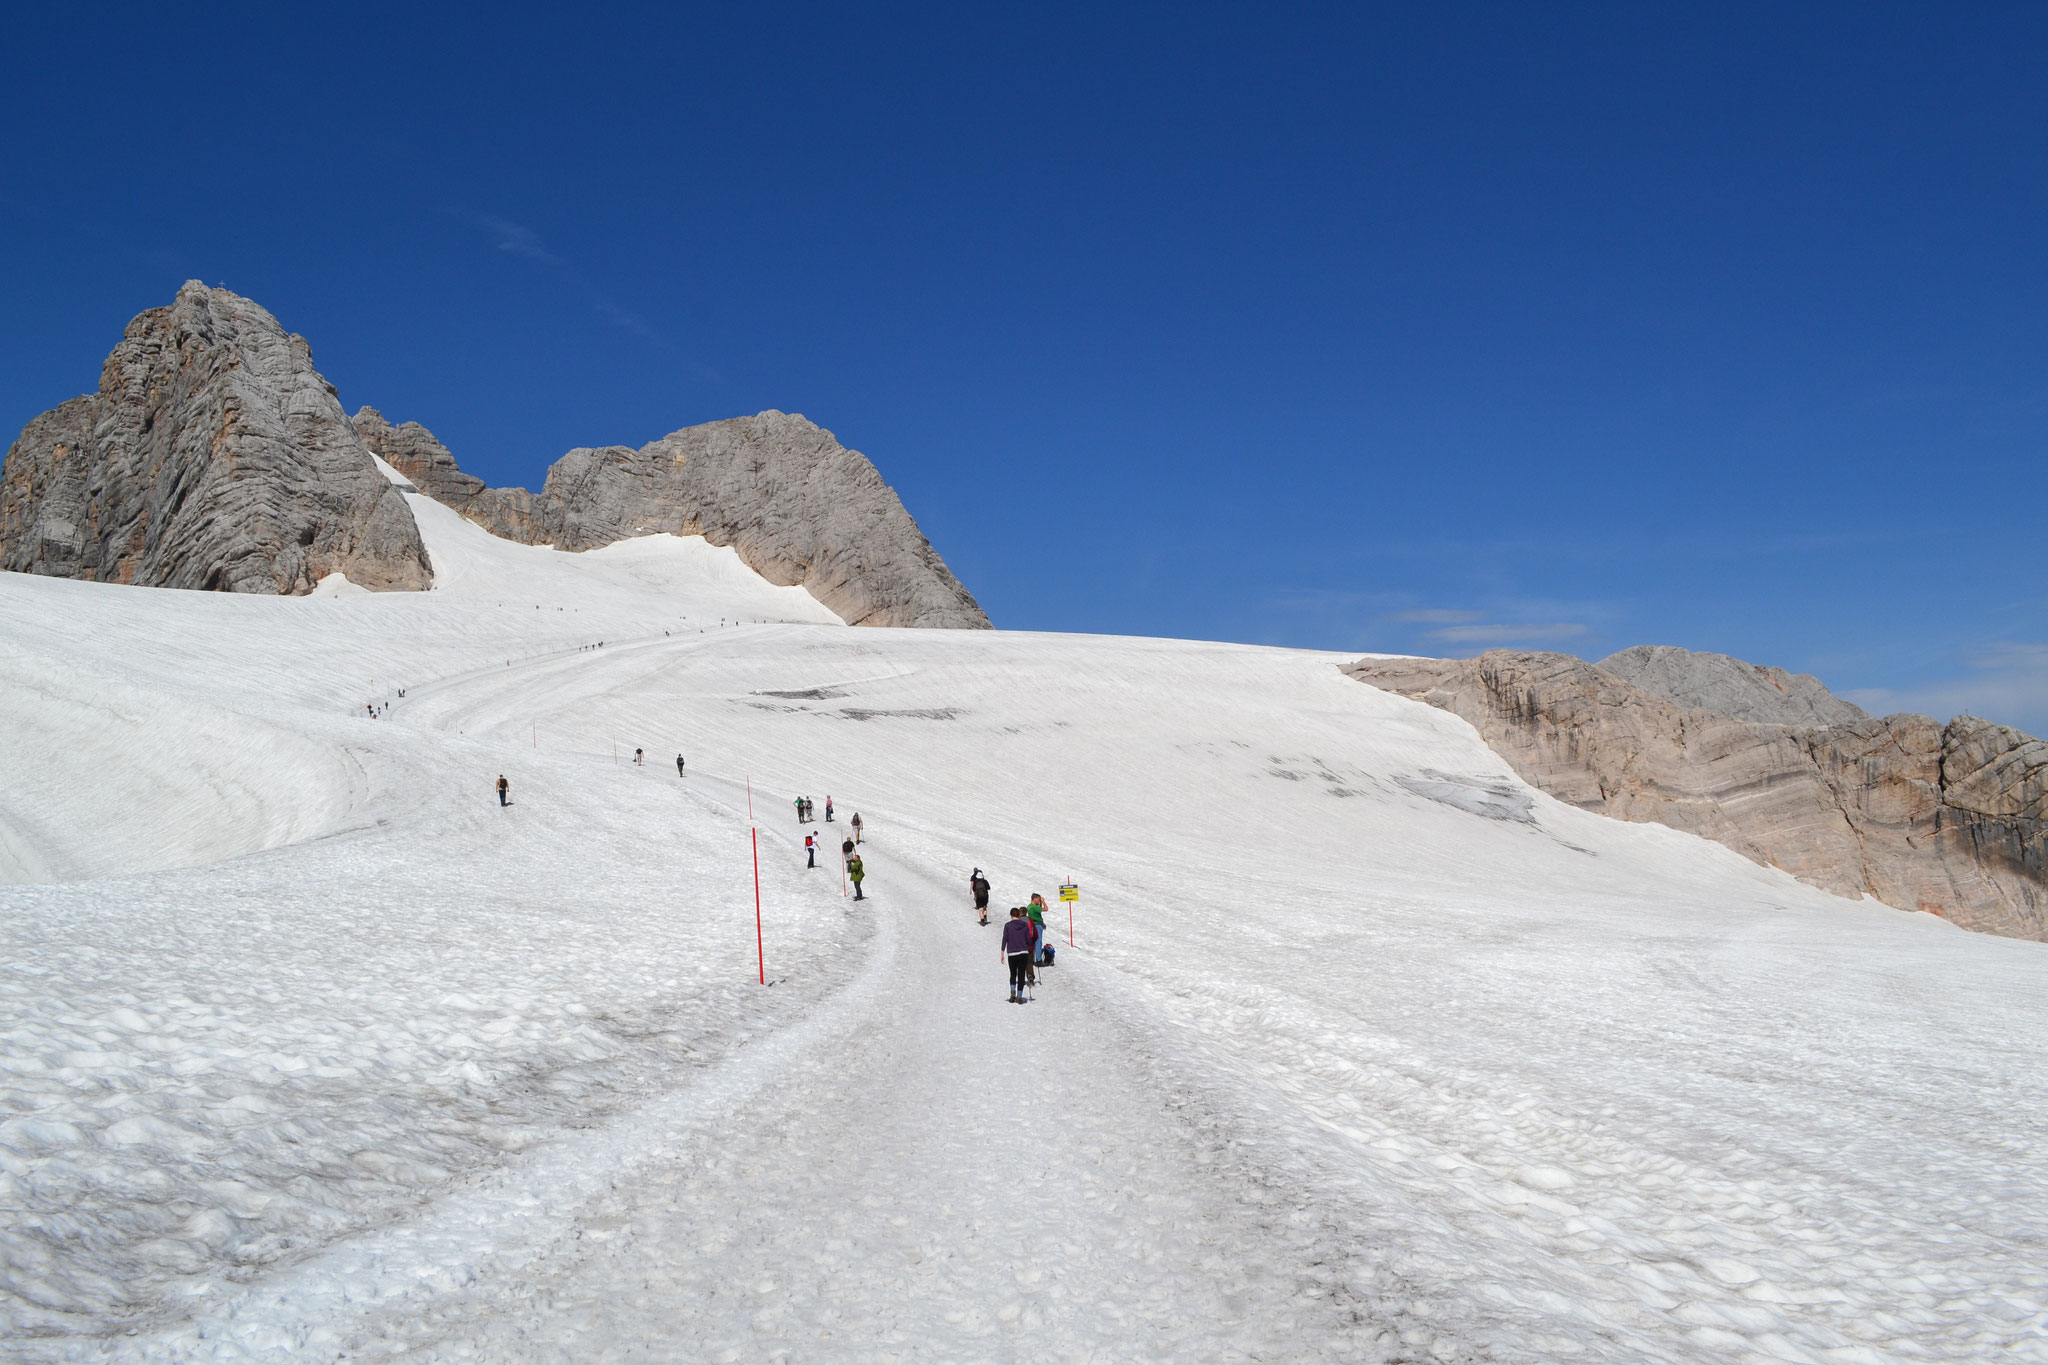 Hiking path on the glacier